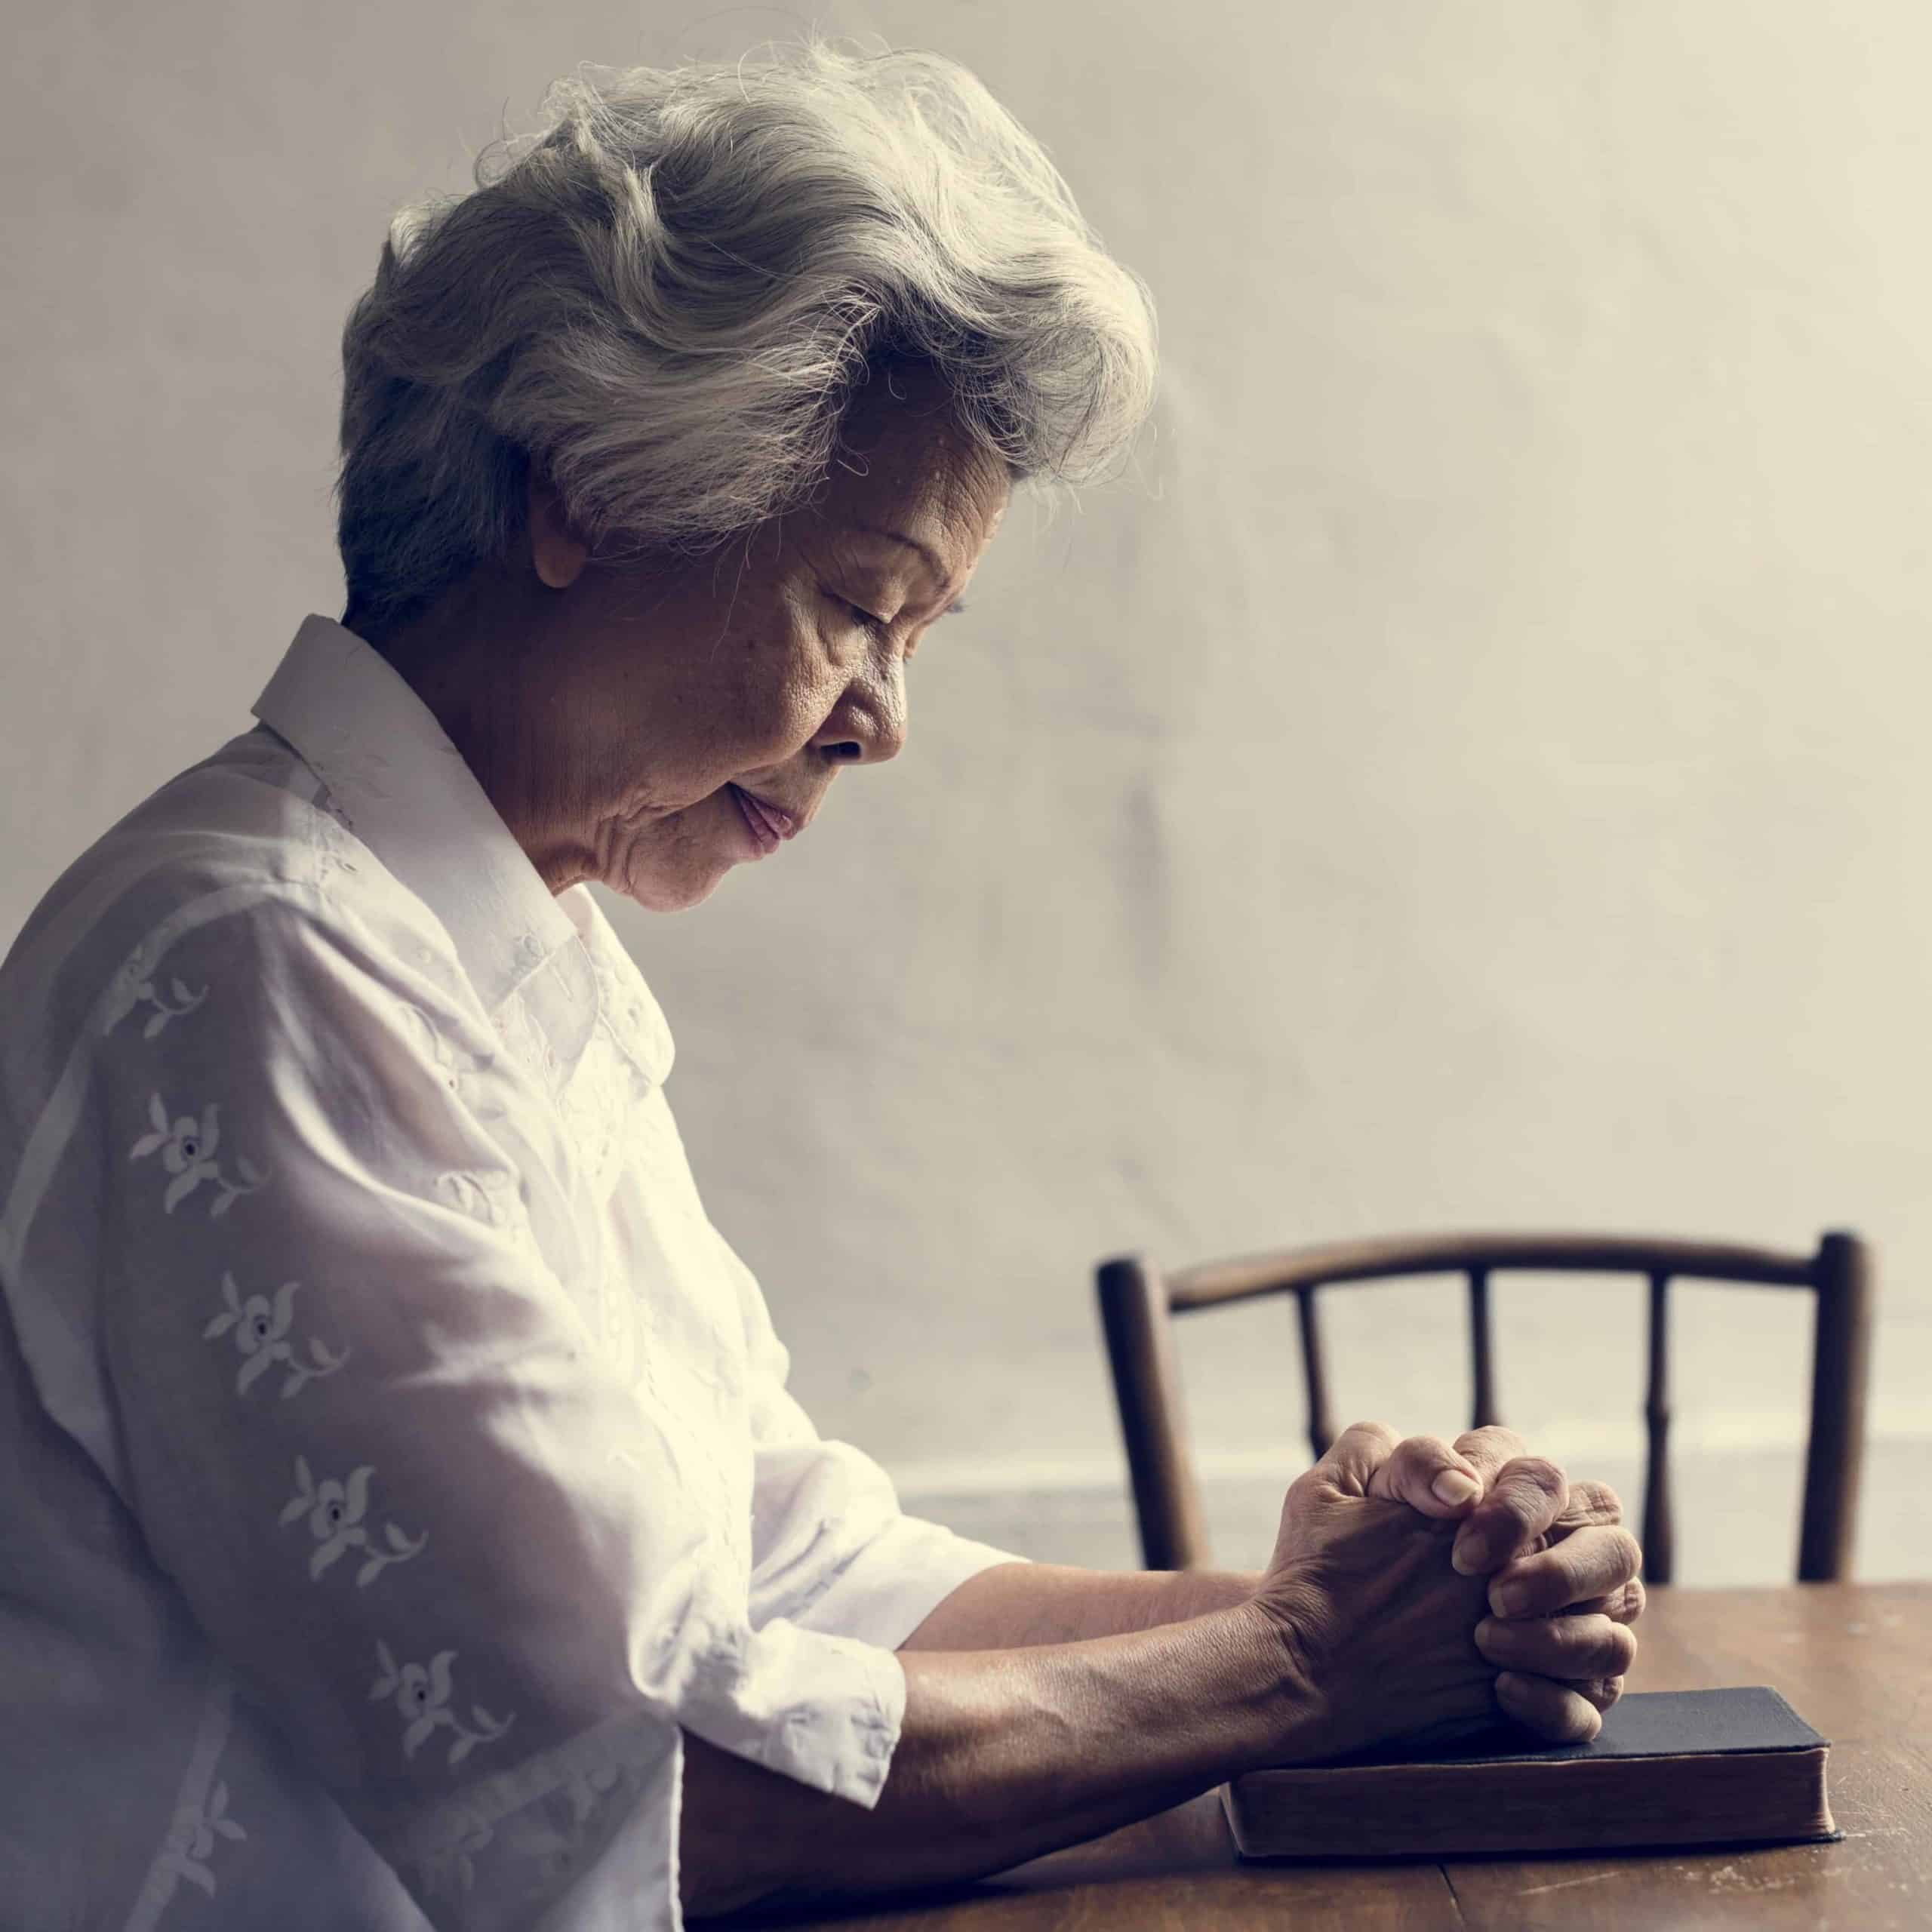 A woman praying with her Bible at a table.